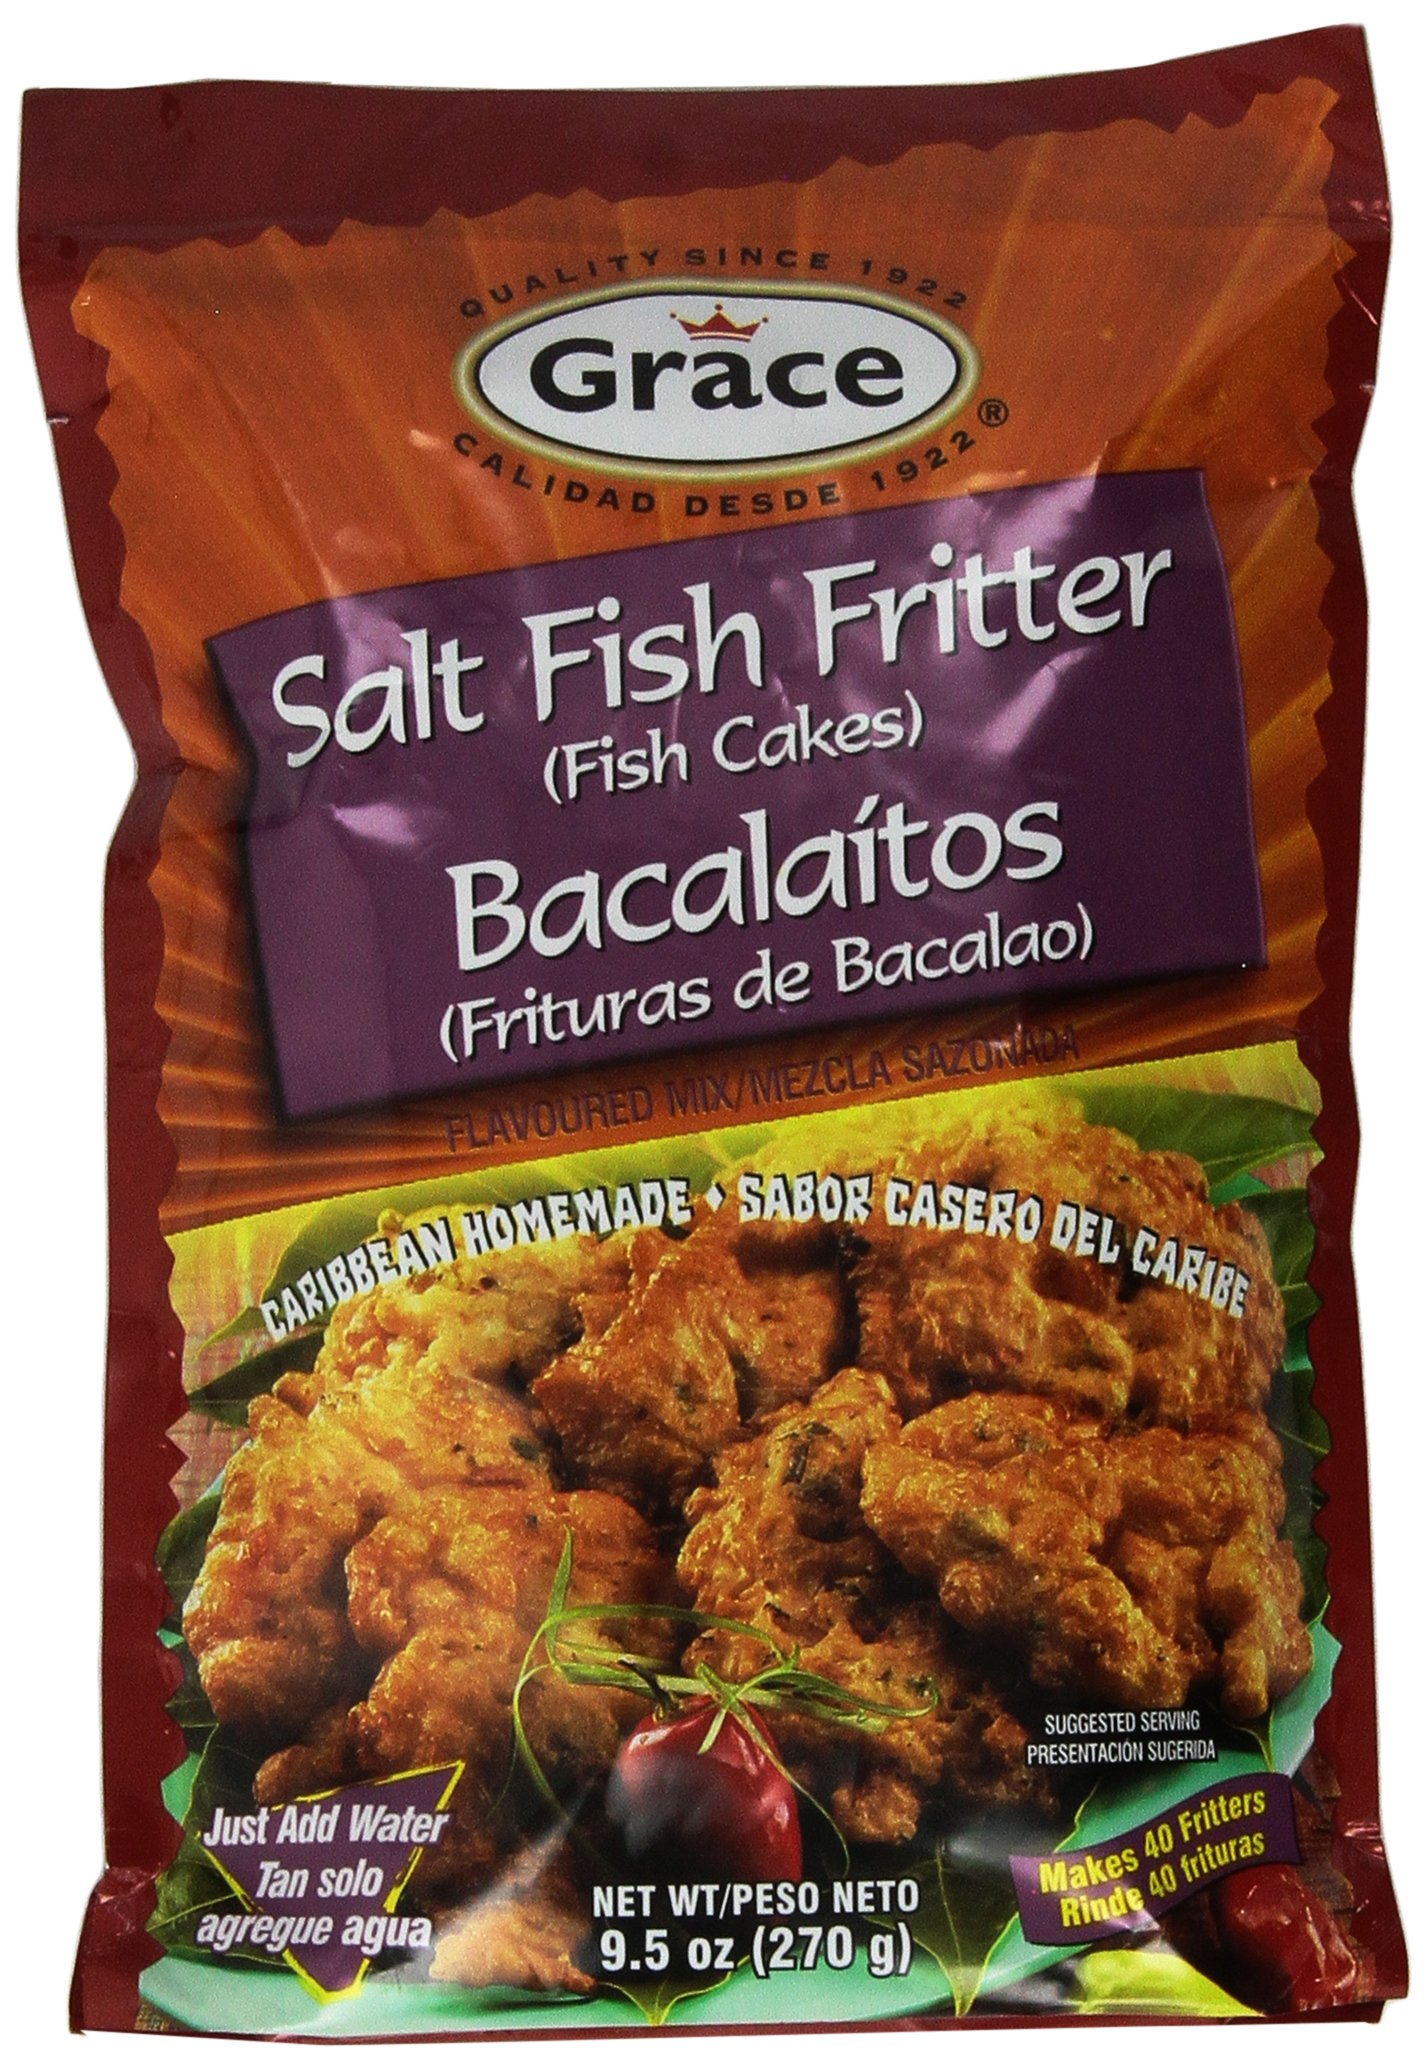 Grace Salt Fish Fritter Mix, makes 40 fritters, 9.5 oz